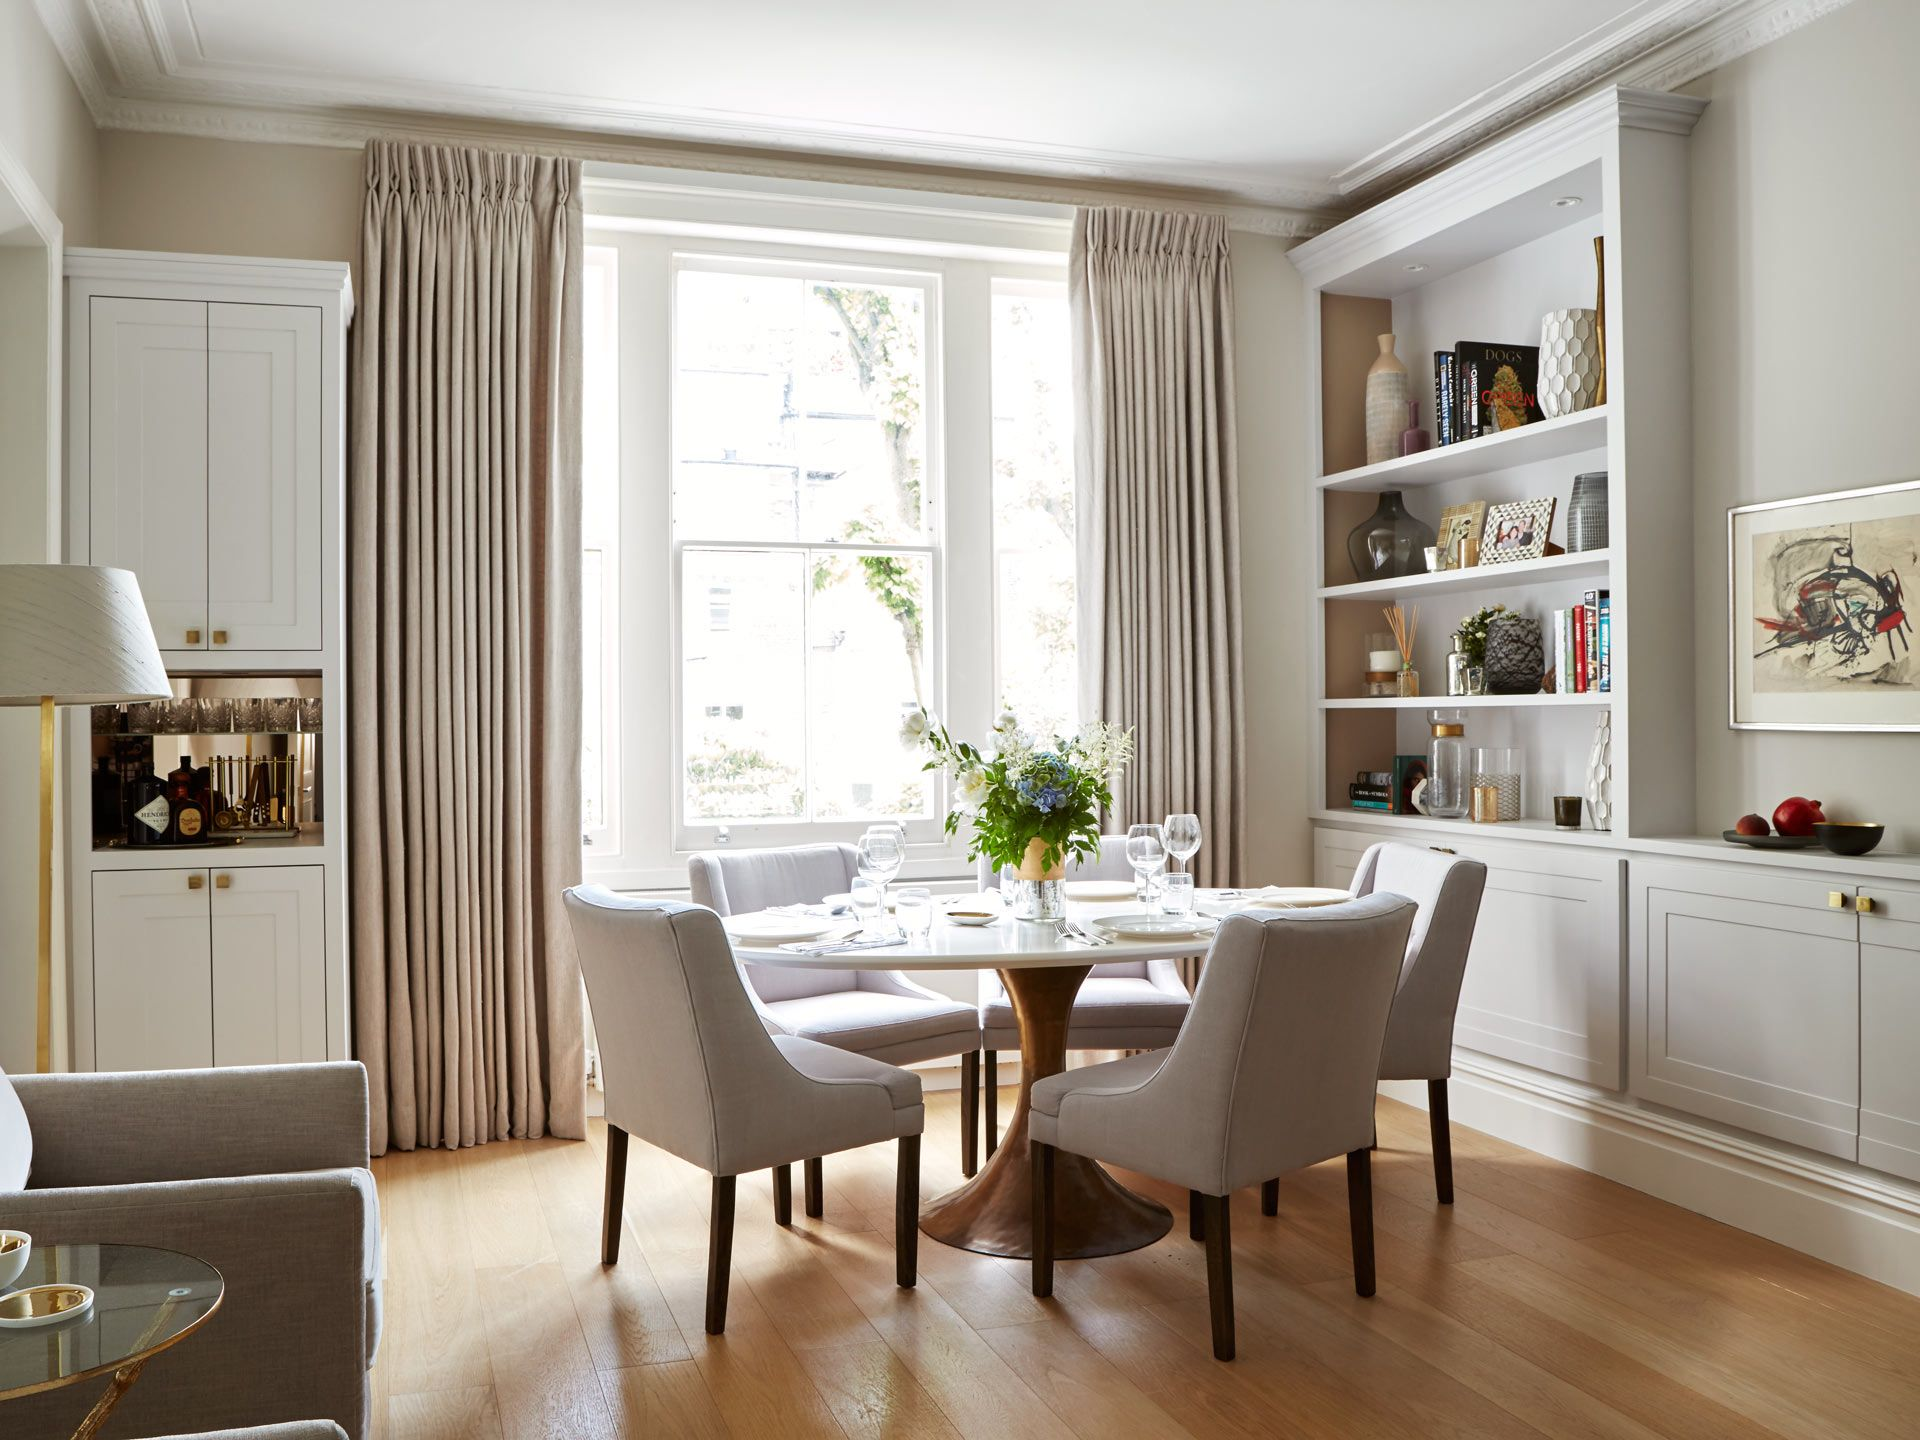 Earls Court Apartment  Dining Room  Dining Rooms  Pinterest Interesting Apartment Dining Room Inspiration Design